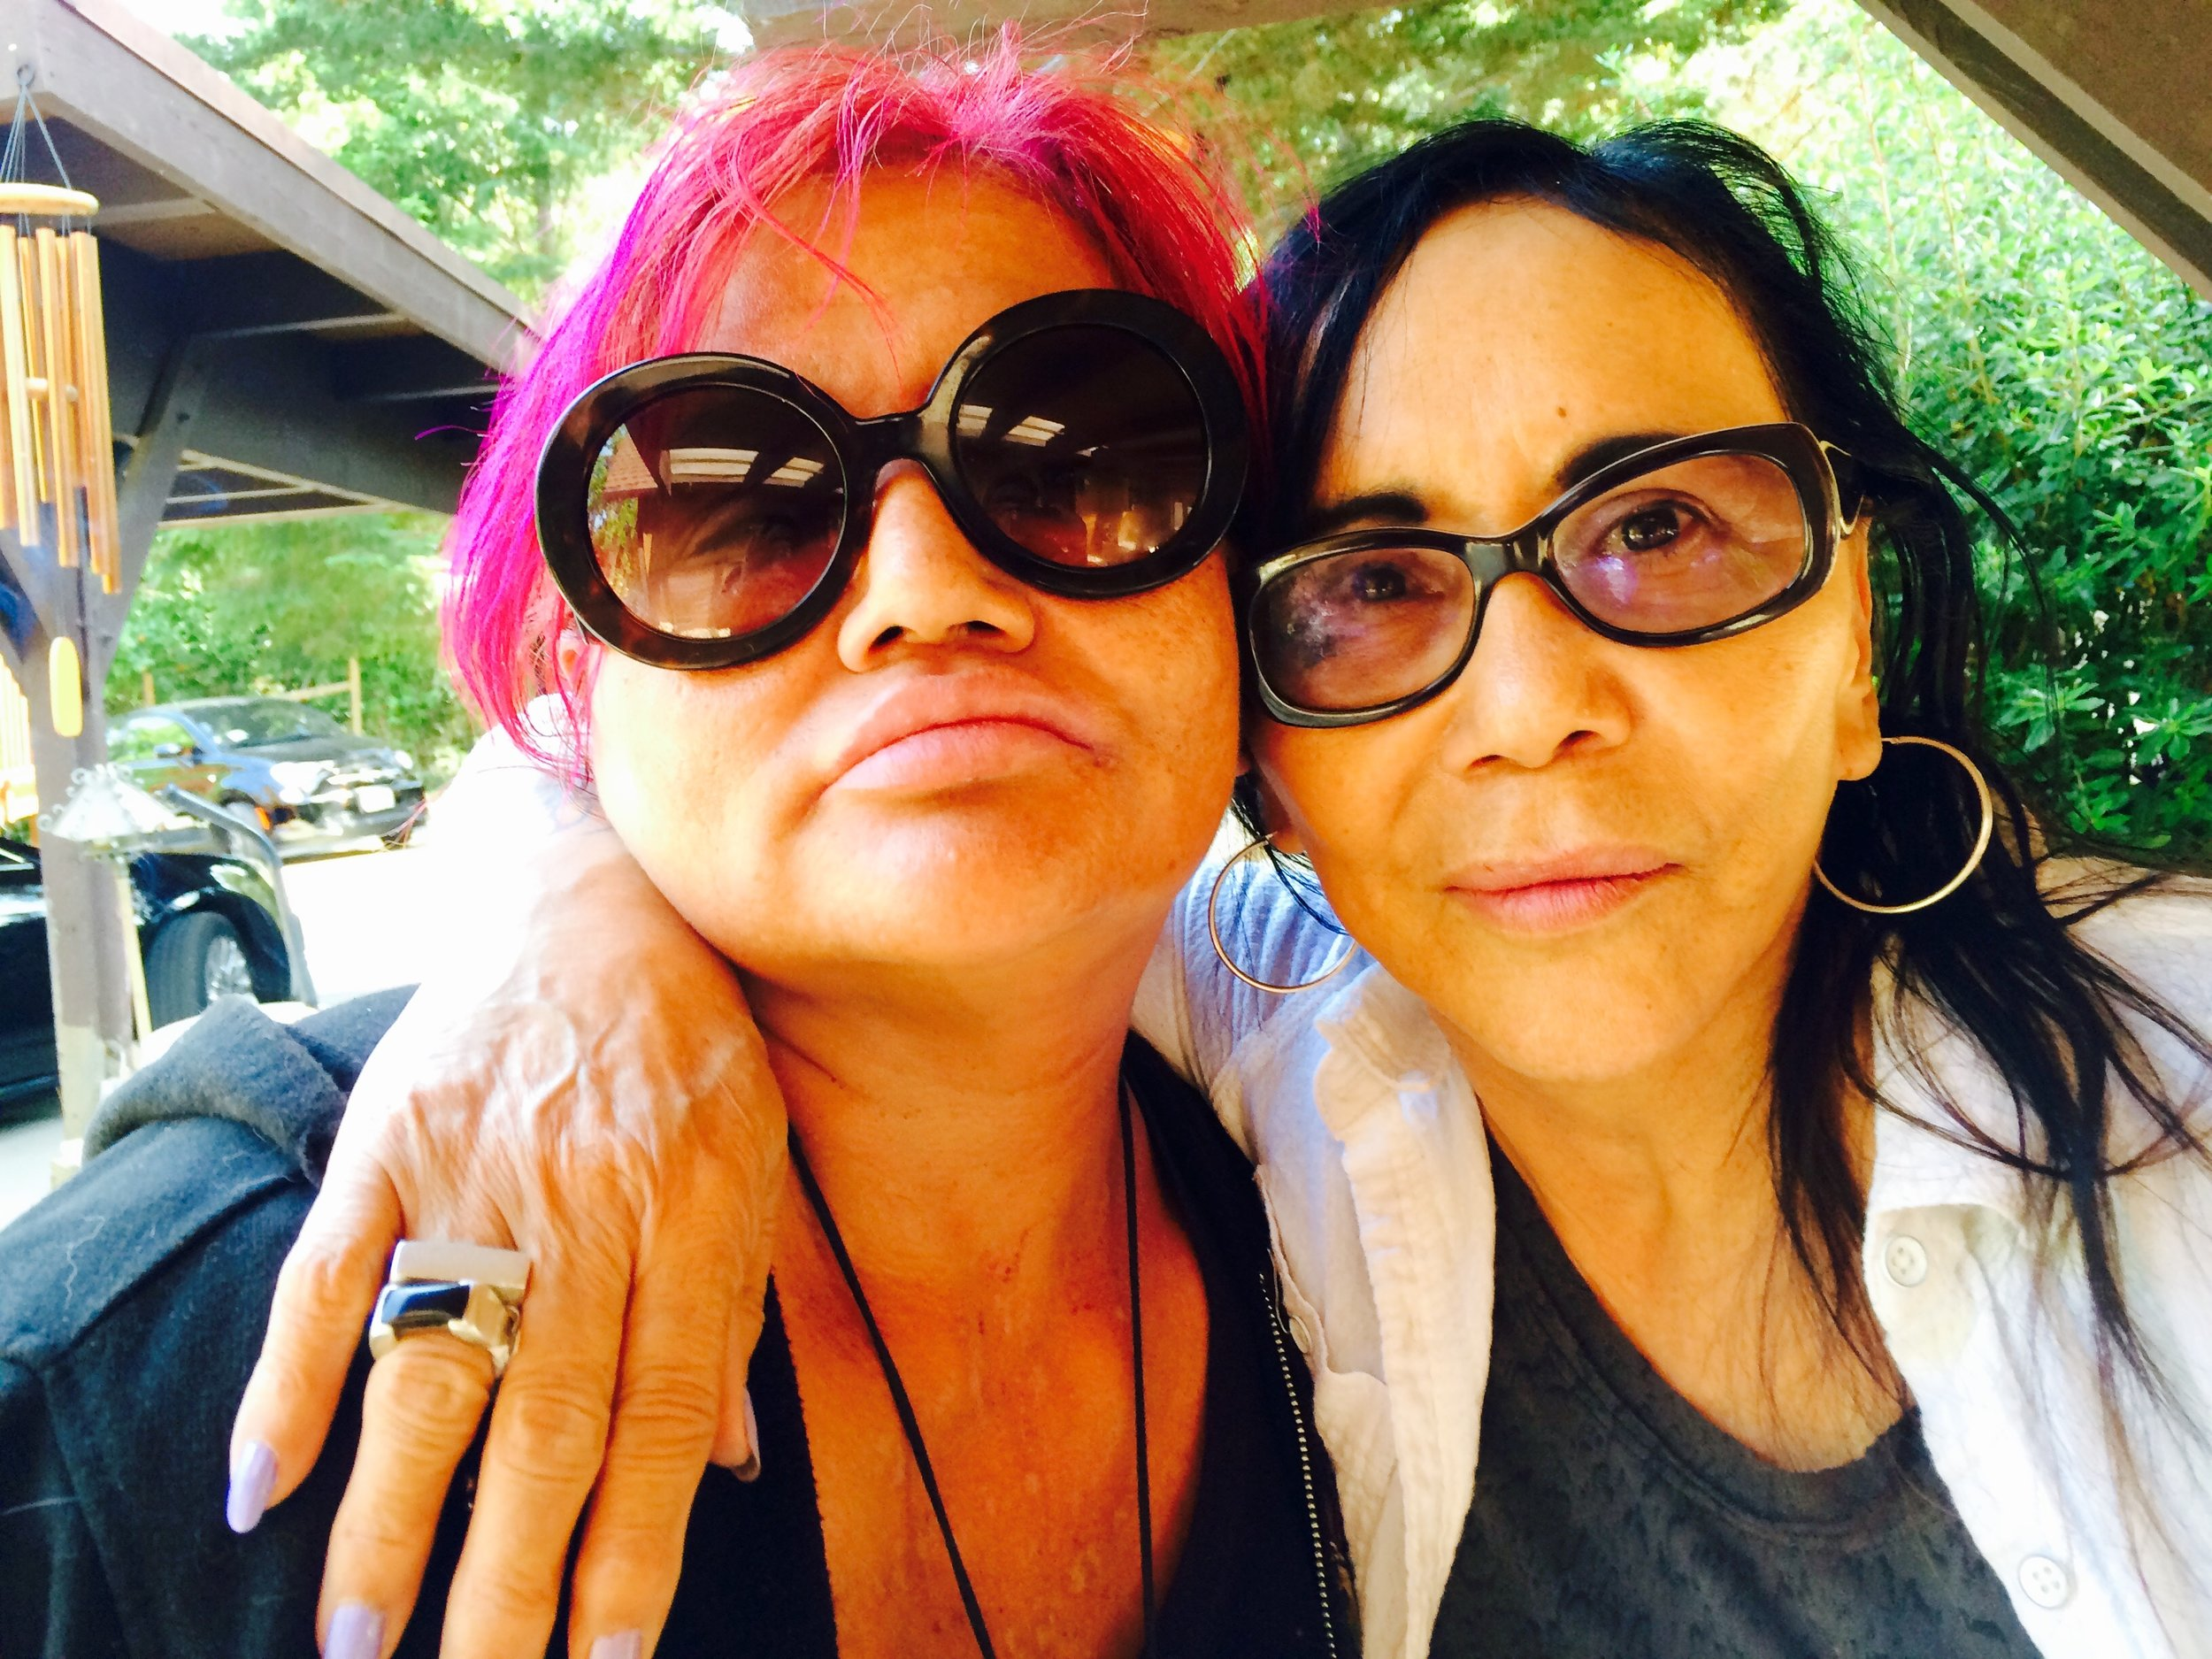 Stephanie Acosta (Oscar's Niece) and her mom Anita Acosta (Oscar's sister) at home near the Russian River in Northern California.